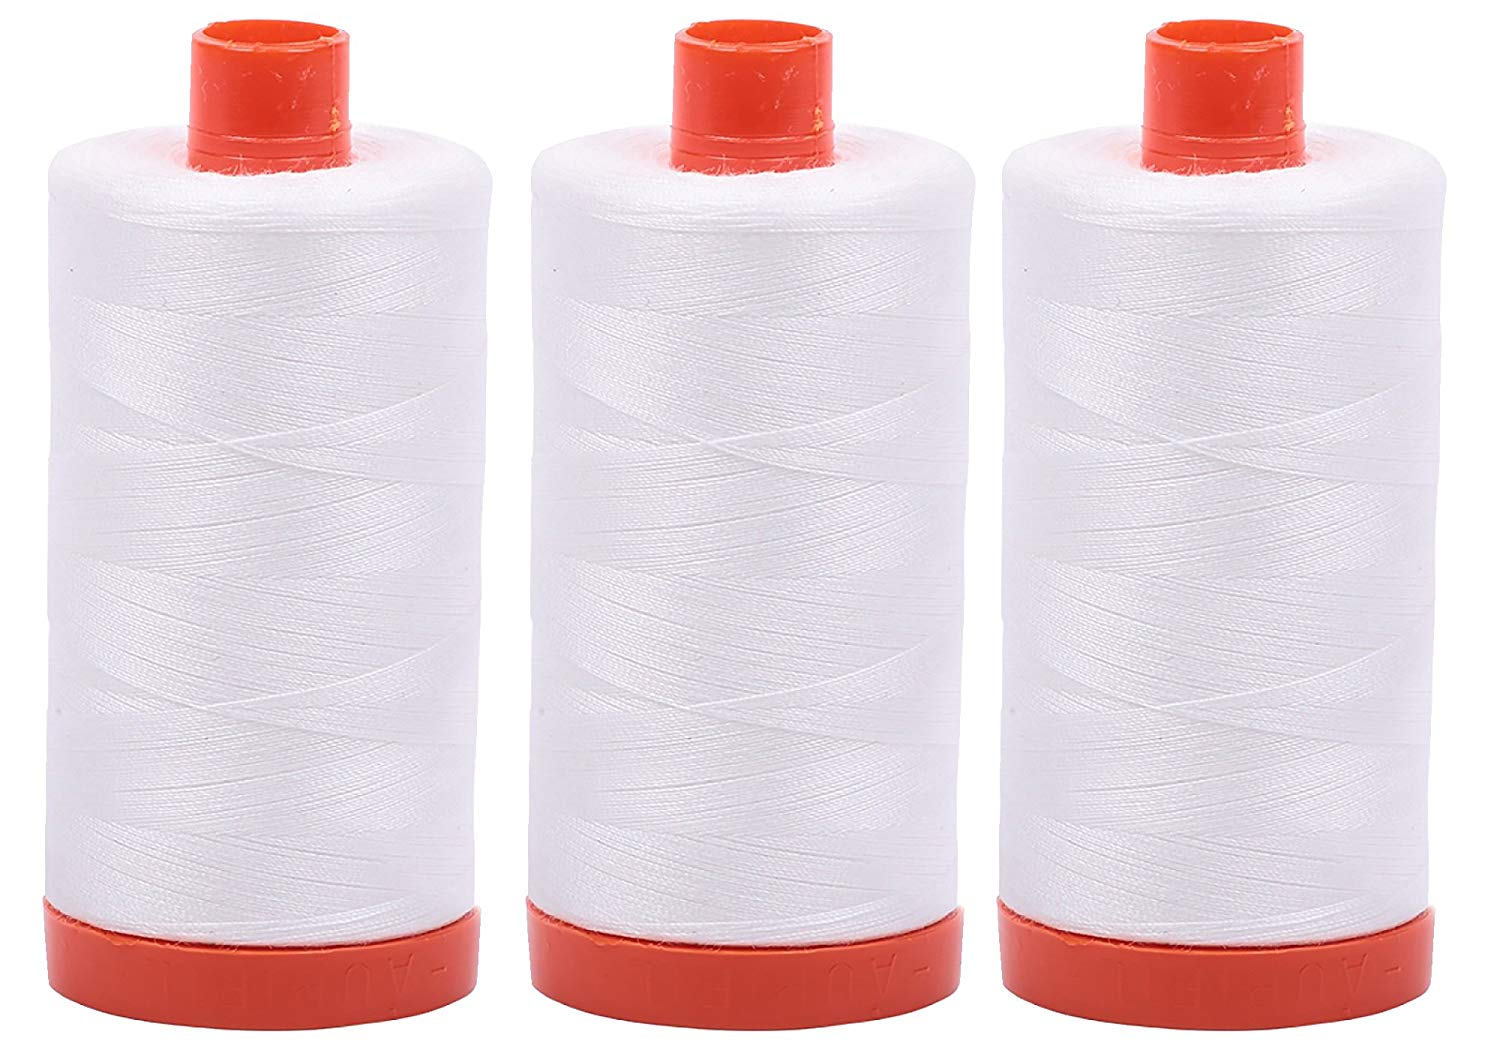 Aurifil Mako 50 wt Cotton Thread - Natural White (2021) - Bundle of 3